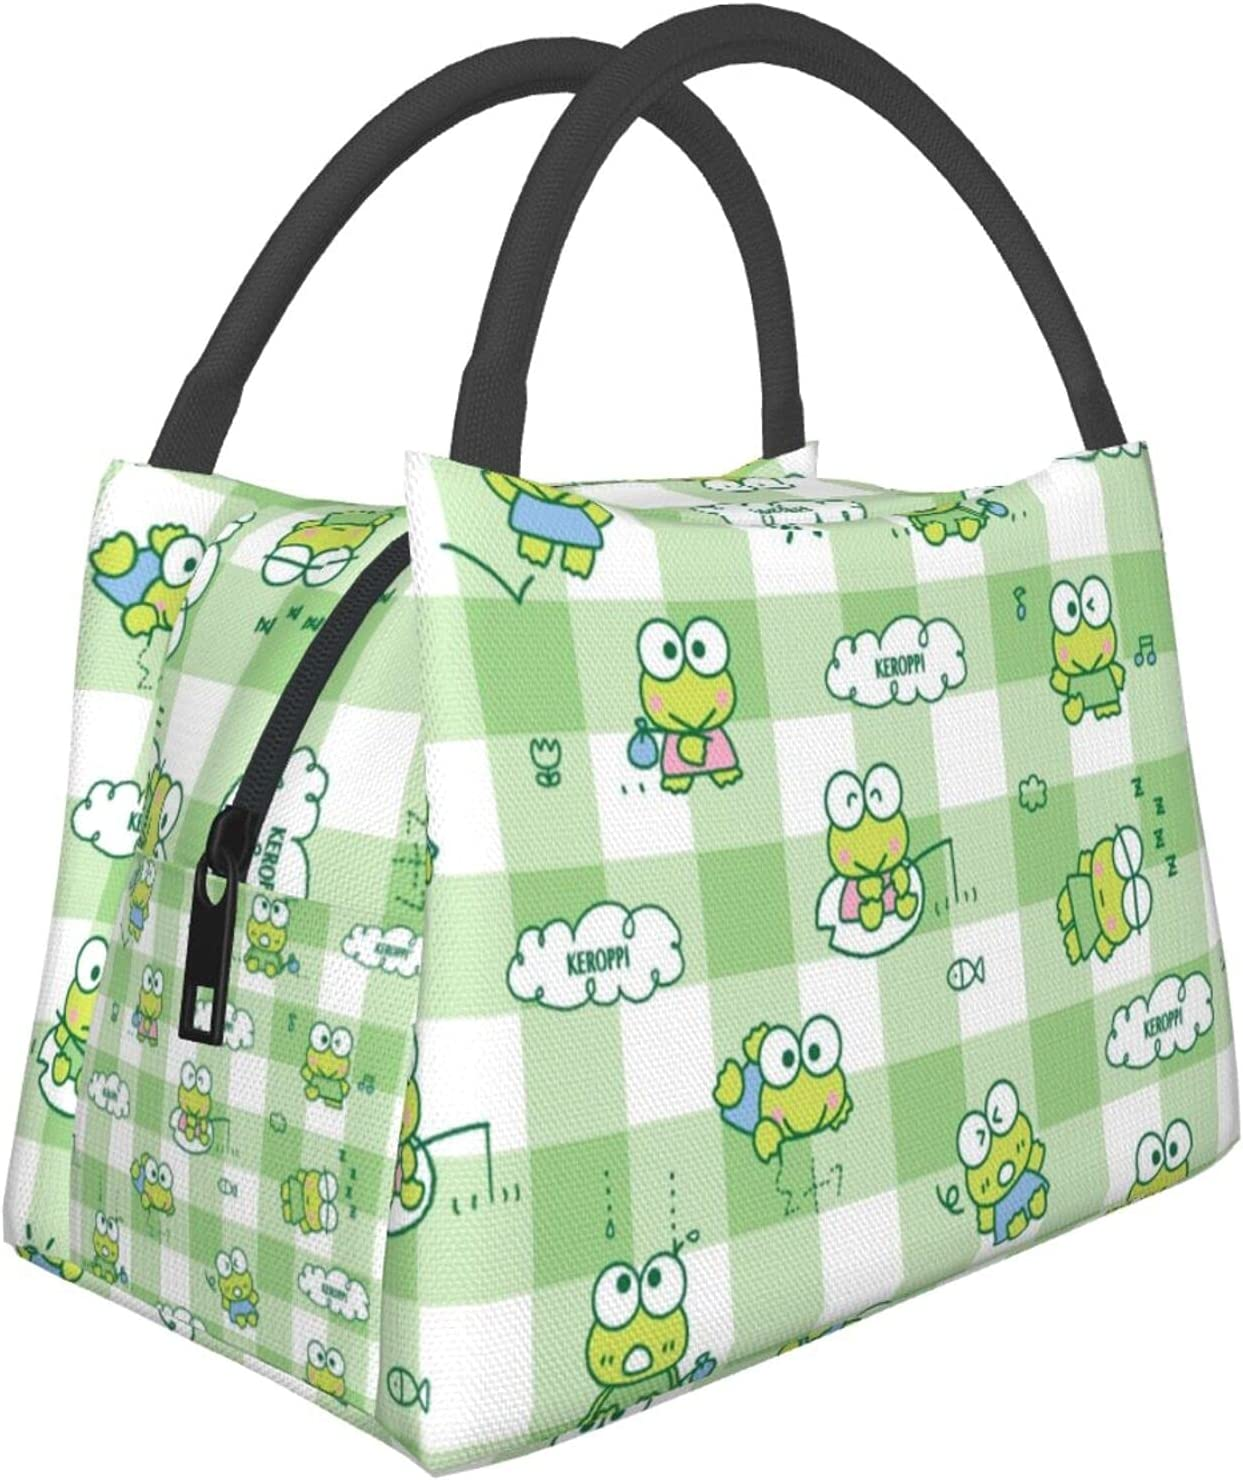 Happy Little Frogs Pattern Insulated Lunch Bag Large Lunch Tote Bag With Shoulder Strap for Boys Girls Women